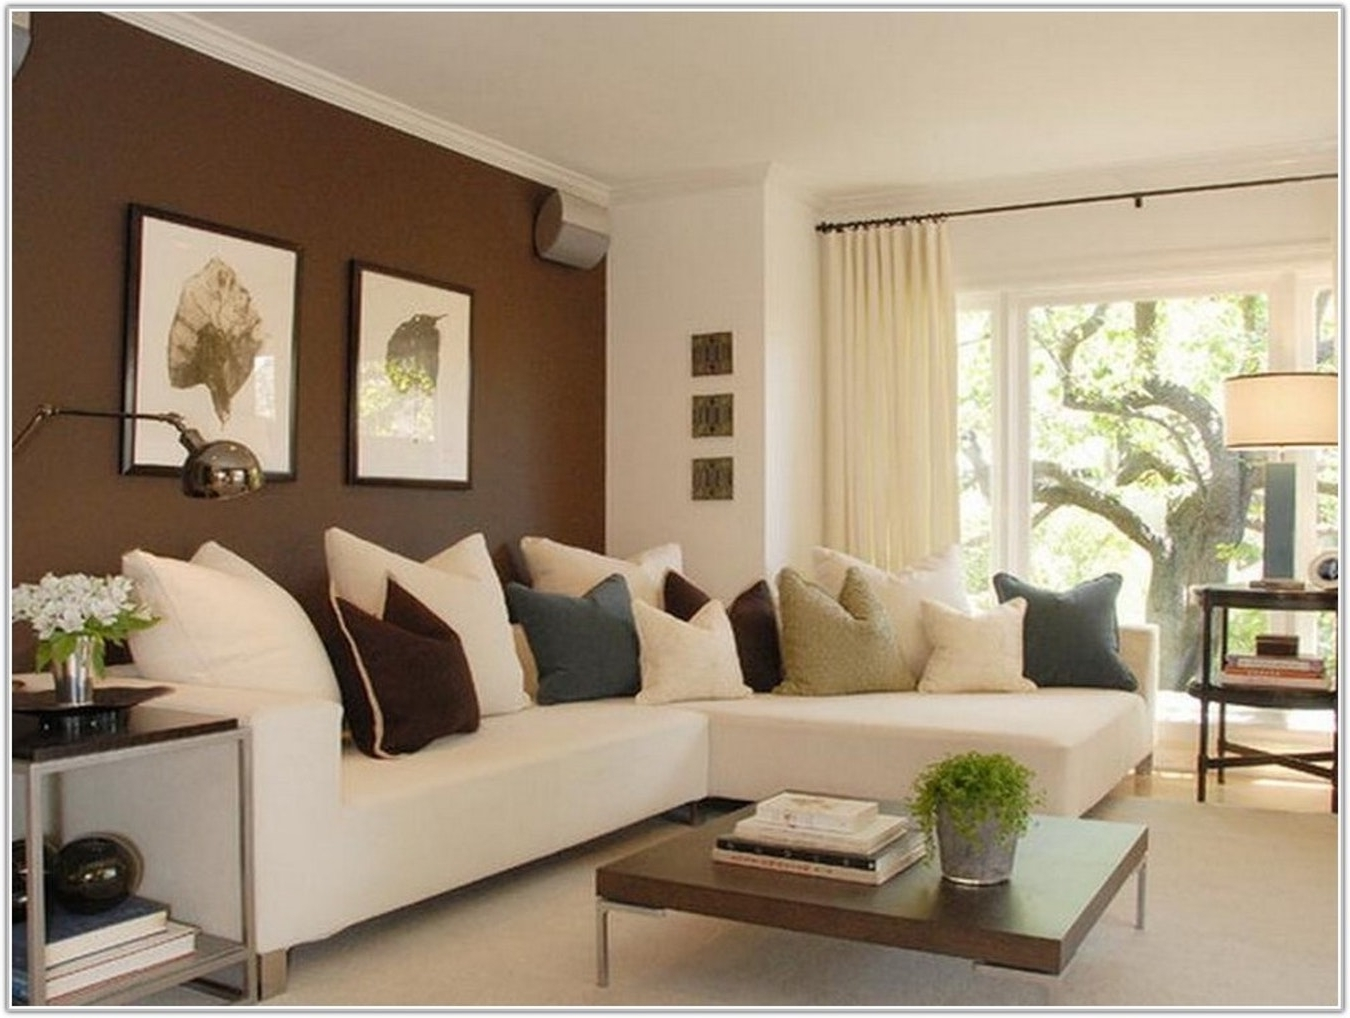 Asian Paints Color Combinations For Living Room Fx About 30+ Asian Paints Model Living Room Pictures Inspirations